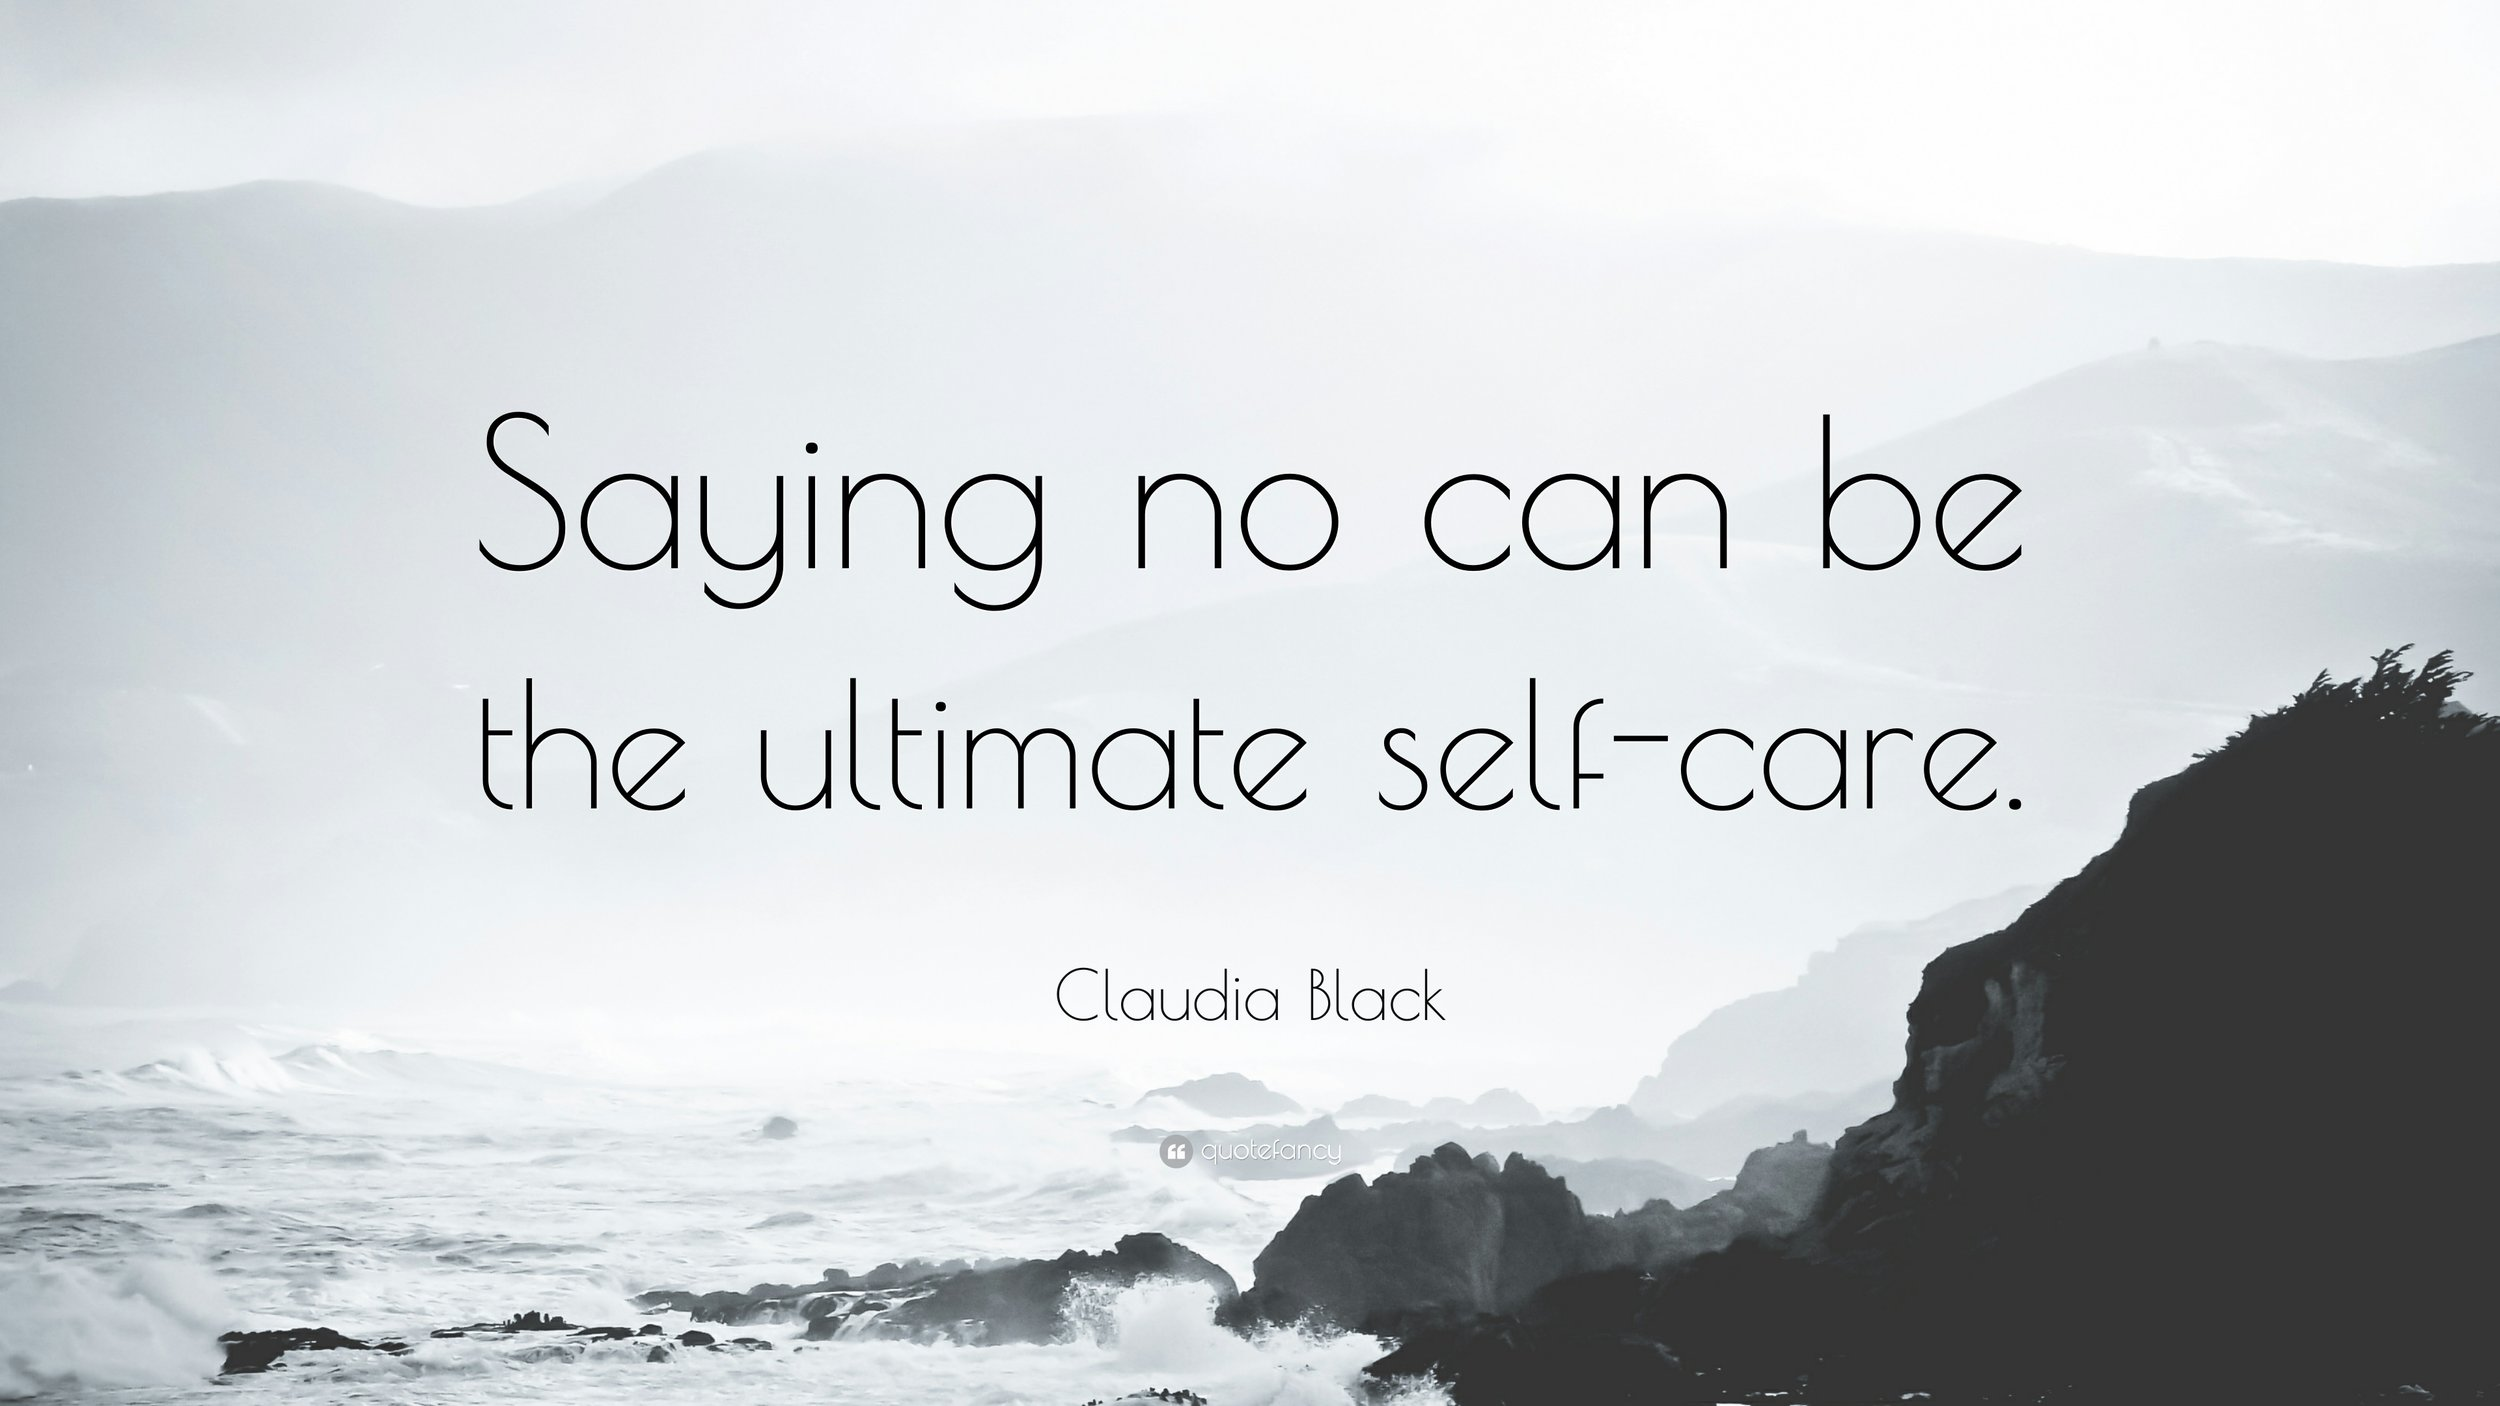 selfcare quote-63.jpg